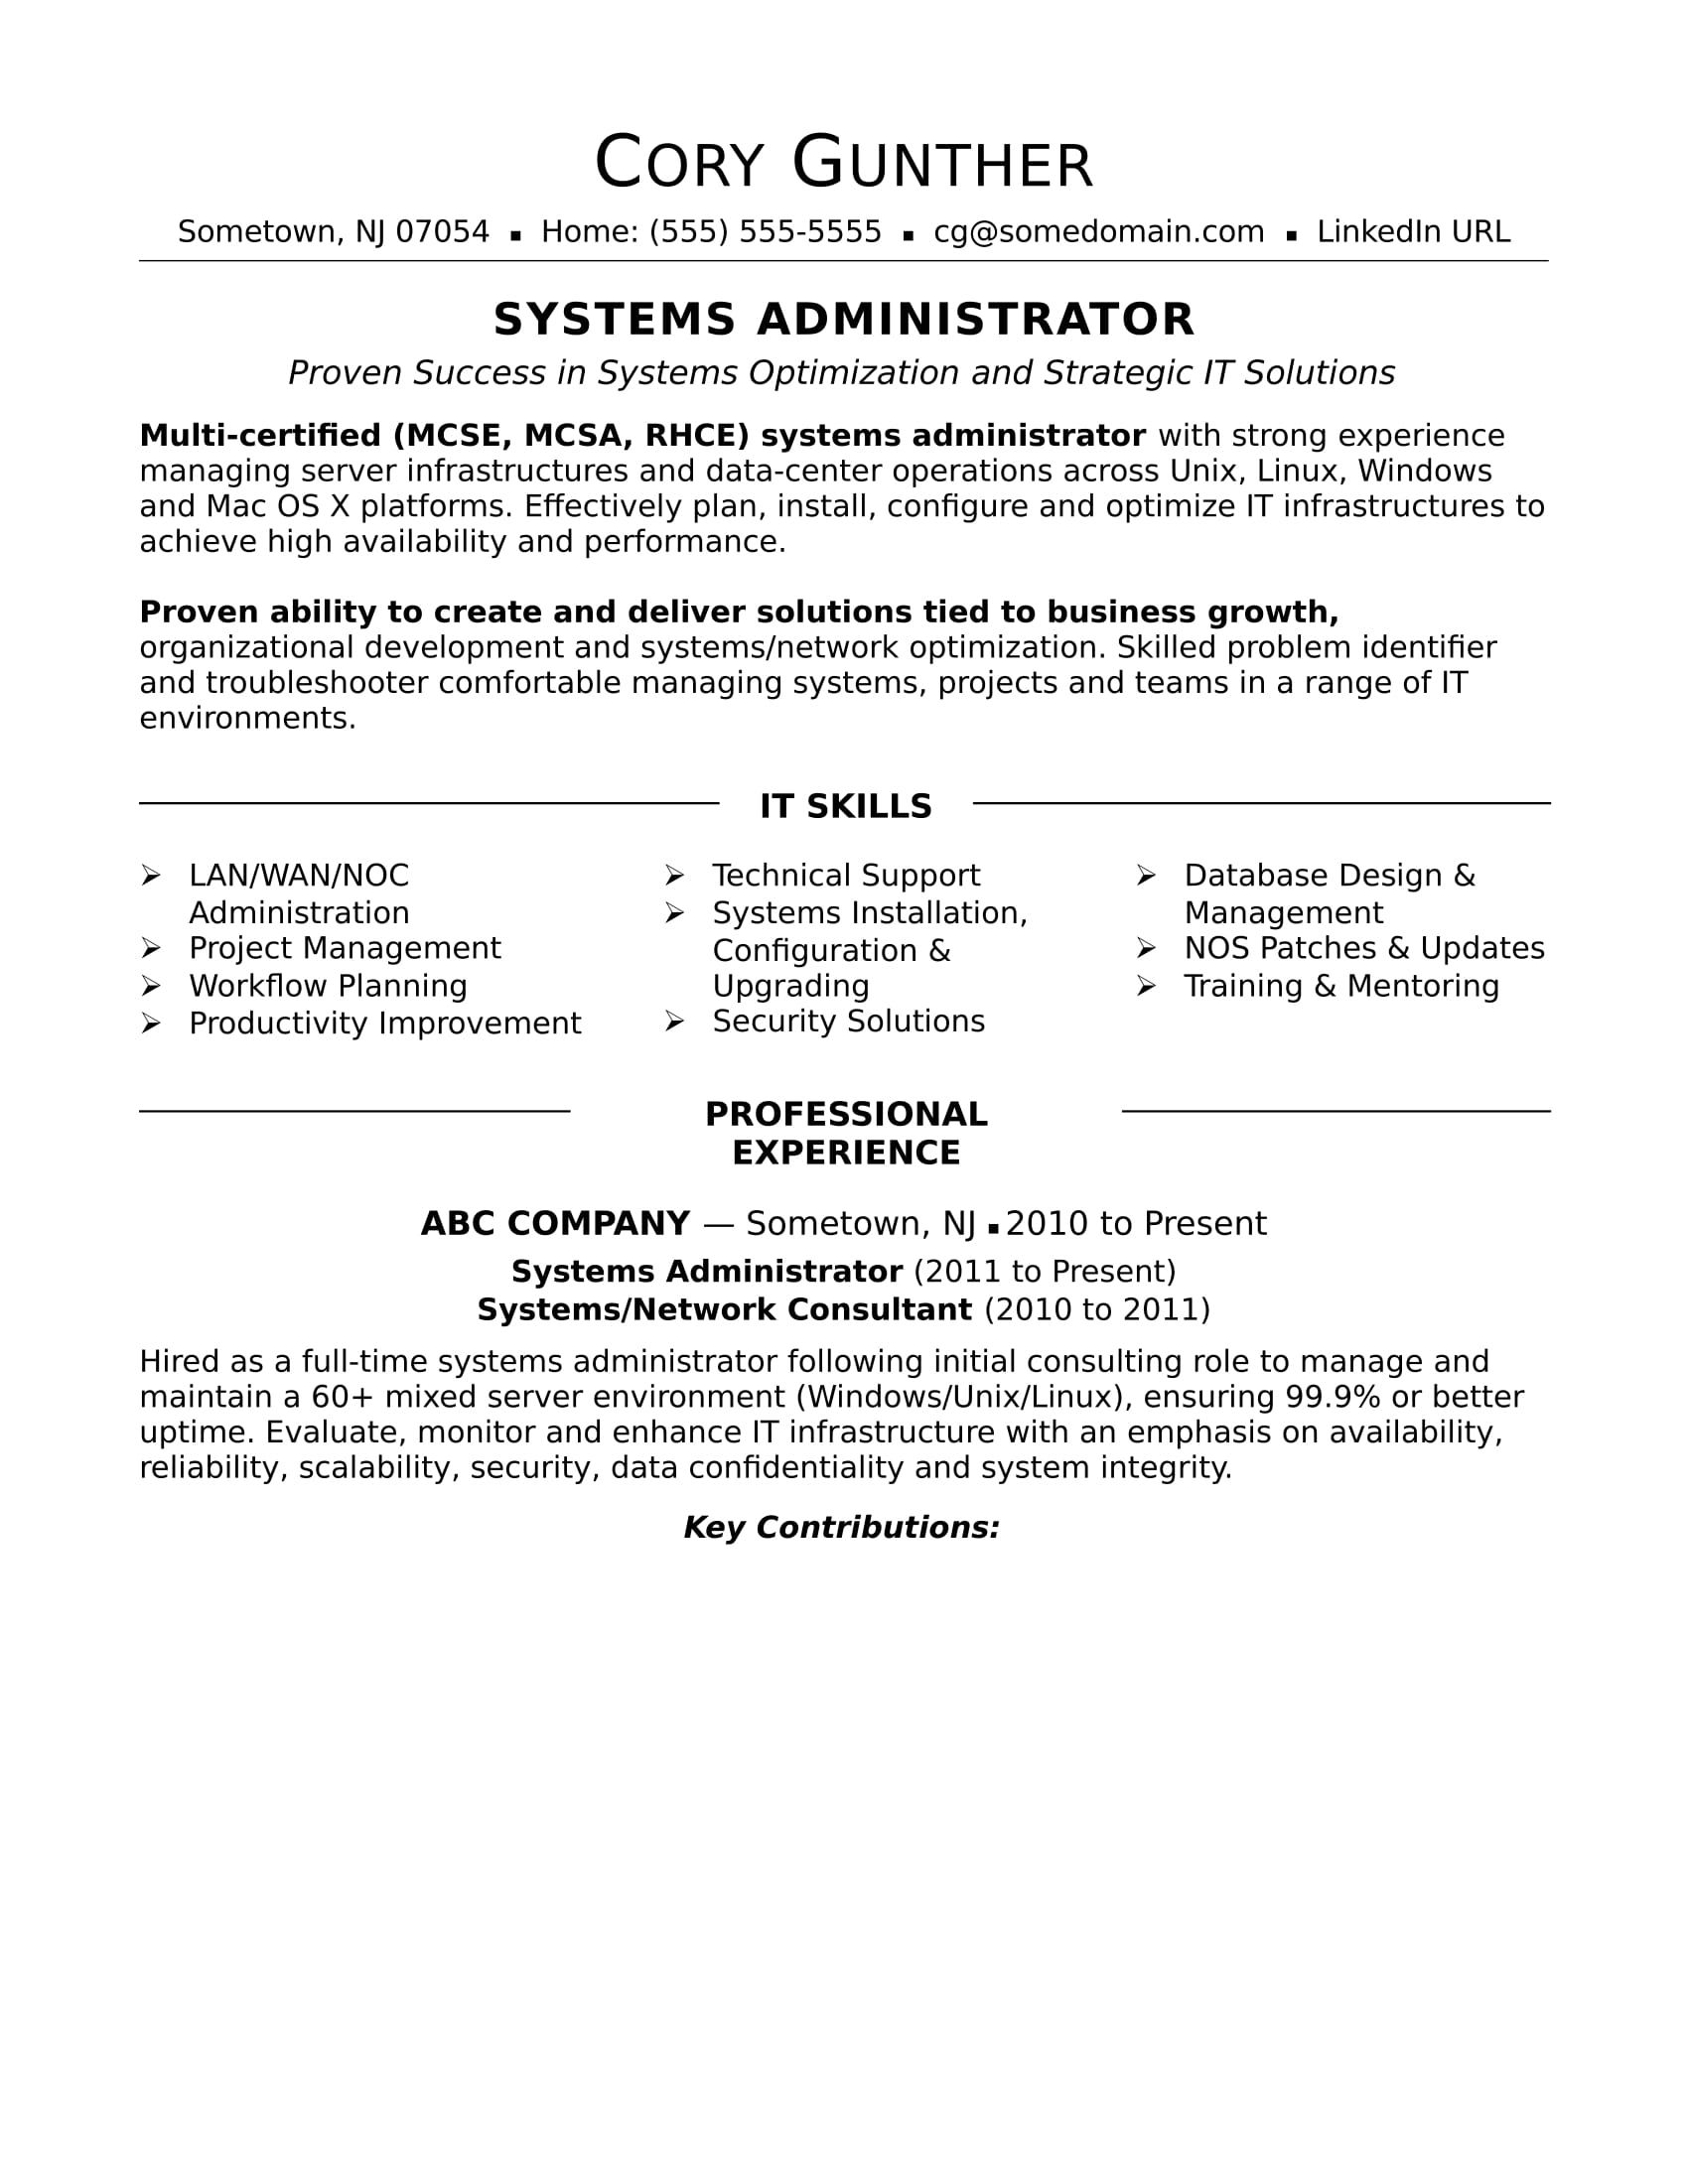 If You Re A Senior Level Sys Admin This Sample Resume For An Experienced Systems Administrator Can Help You Beef Up Your Resume For Your Job Search System Administrator Resume Examples Good Resume